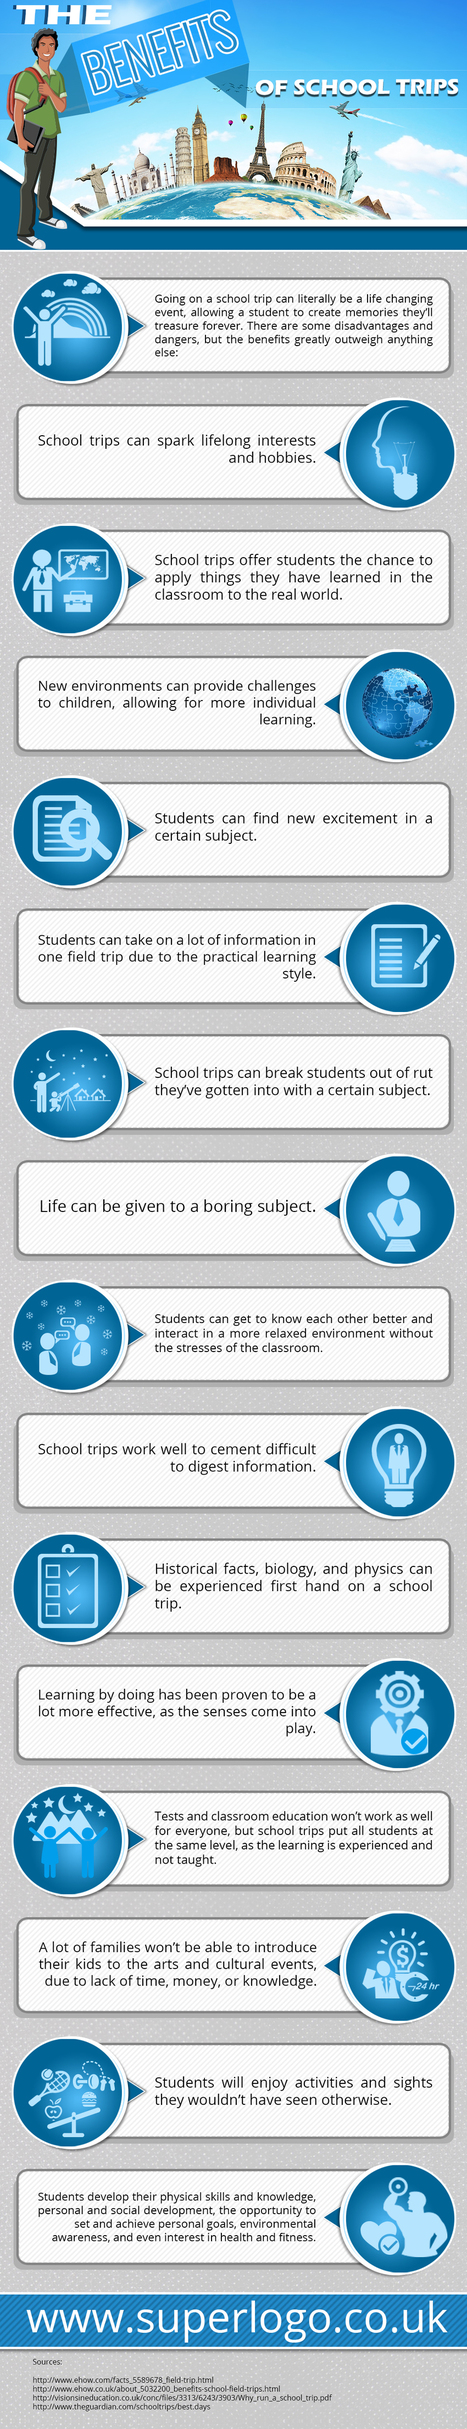 The Benefits of School Trips Infographic - e-Learning Infographics | Online Schools | Scoop.it